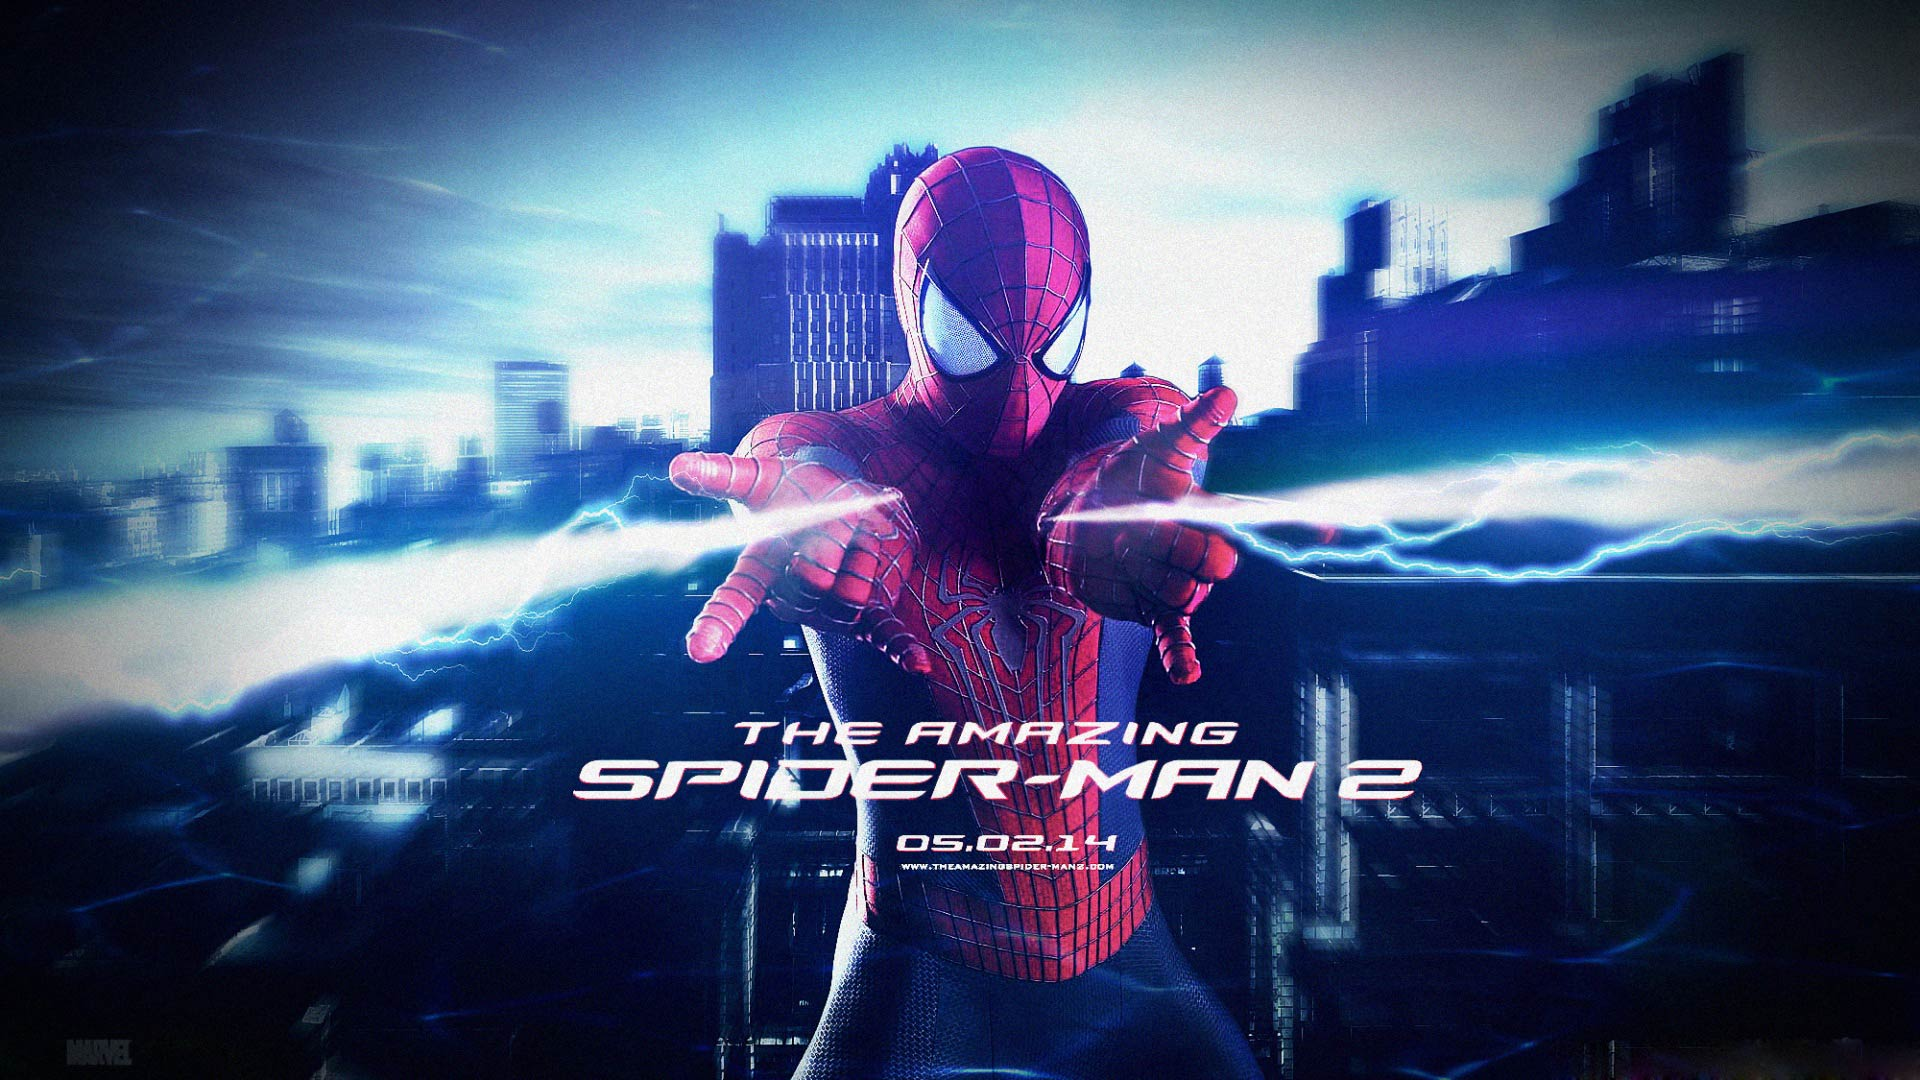 the amazing spiderman 2 2014 poster wallpaper high